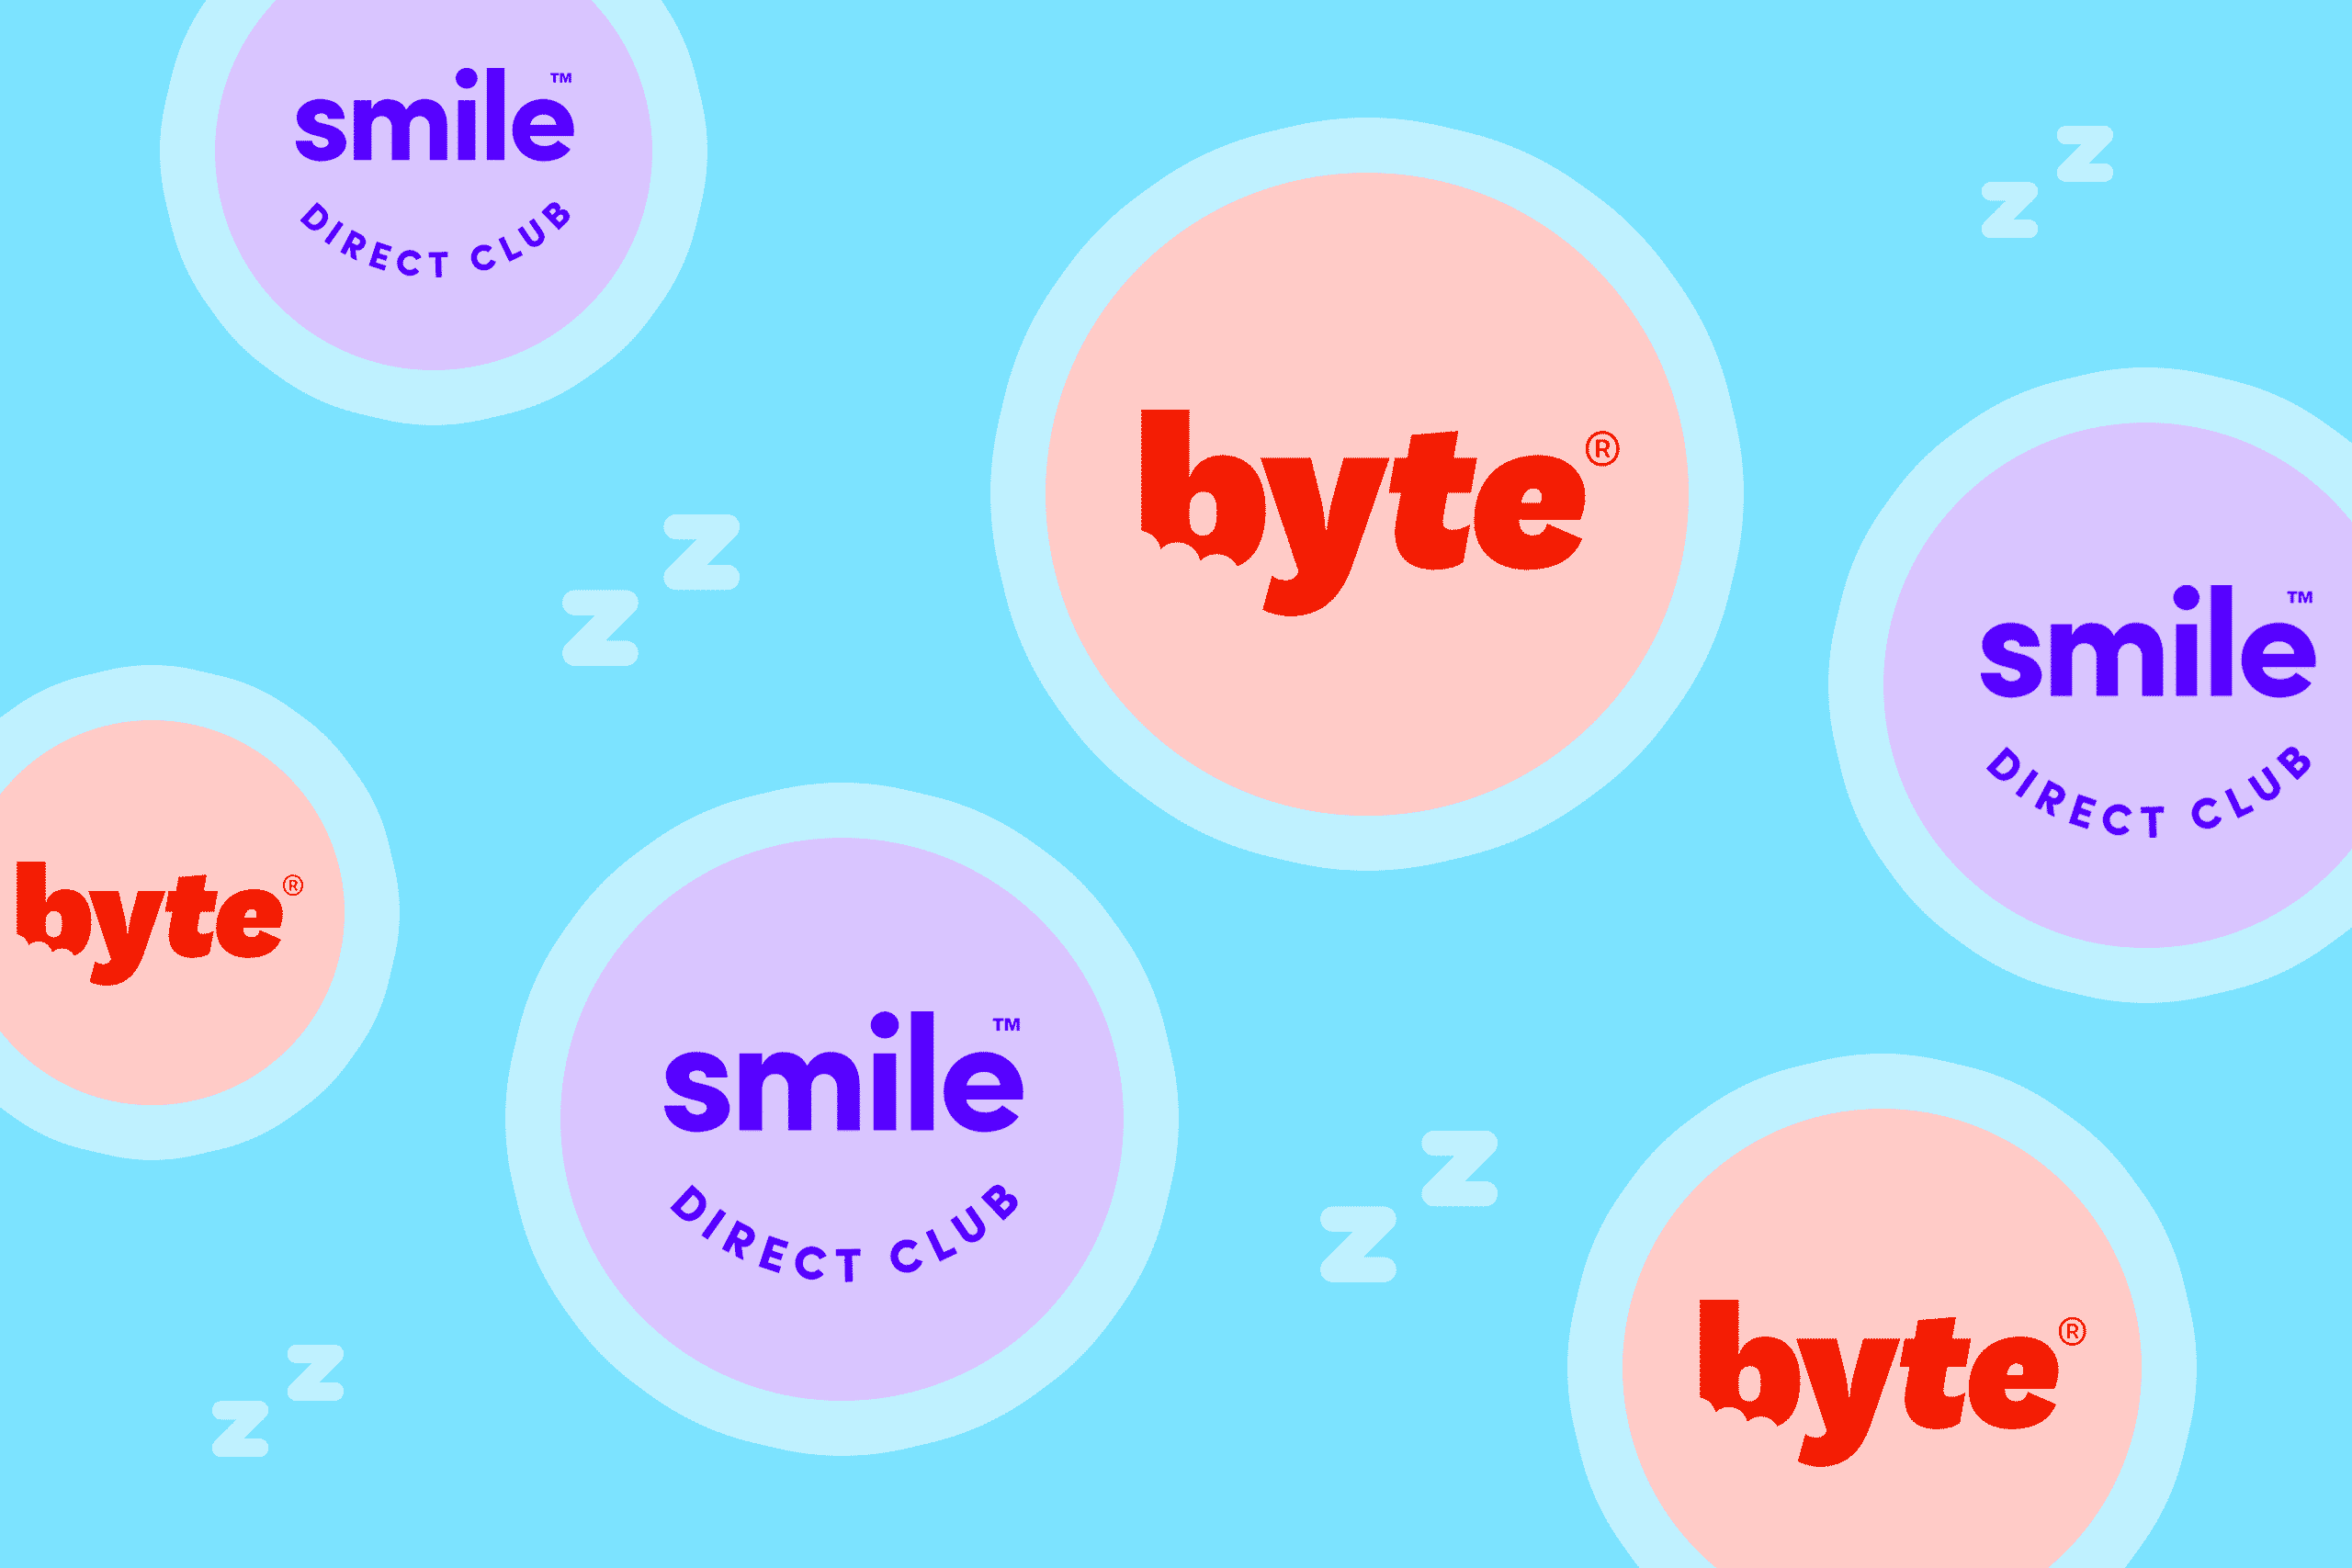 byte and Smile Direct Club photos